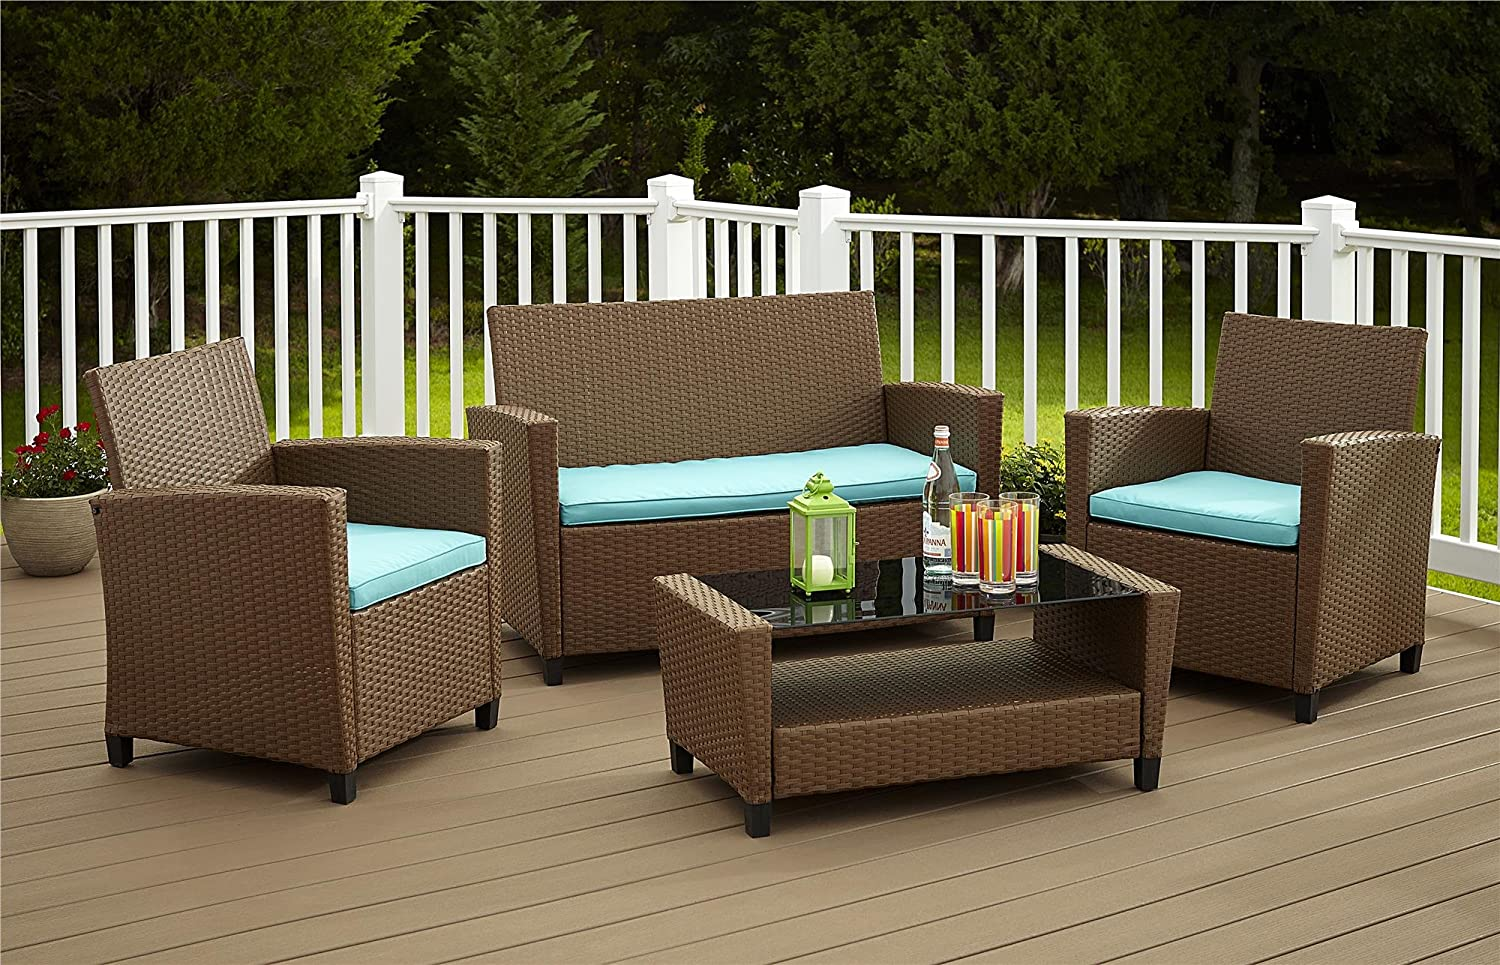 amazoncom cosco products 4 piece malmo resin wicker patio set brown with teal cushions kitchen u0026 dining